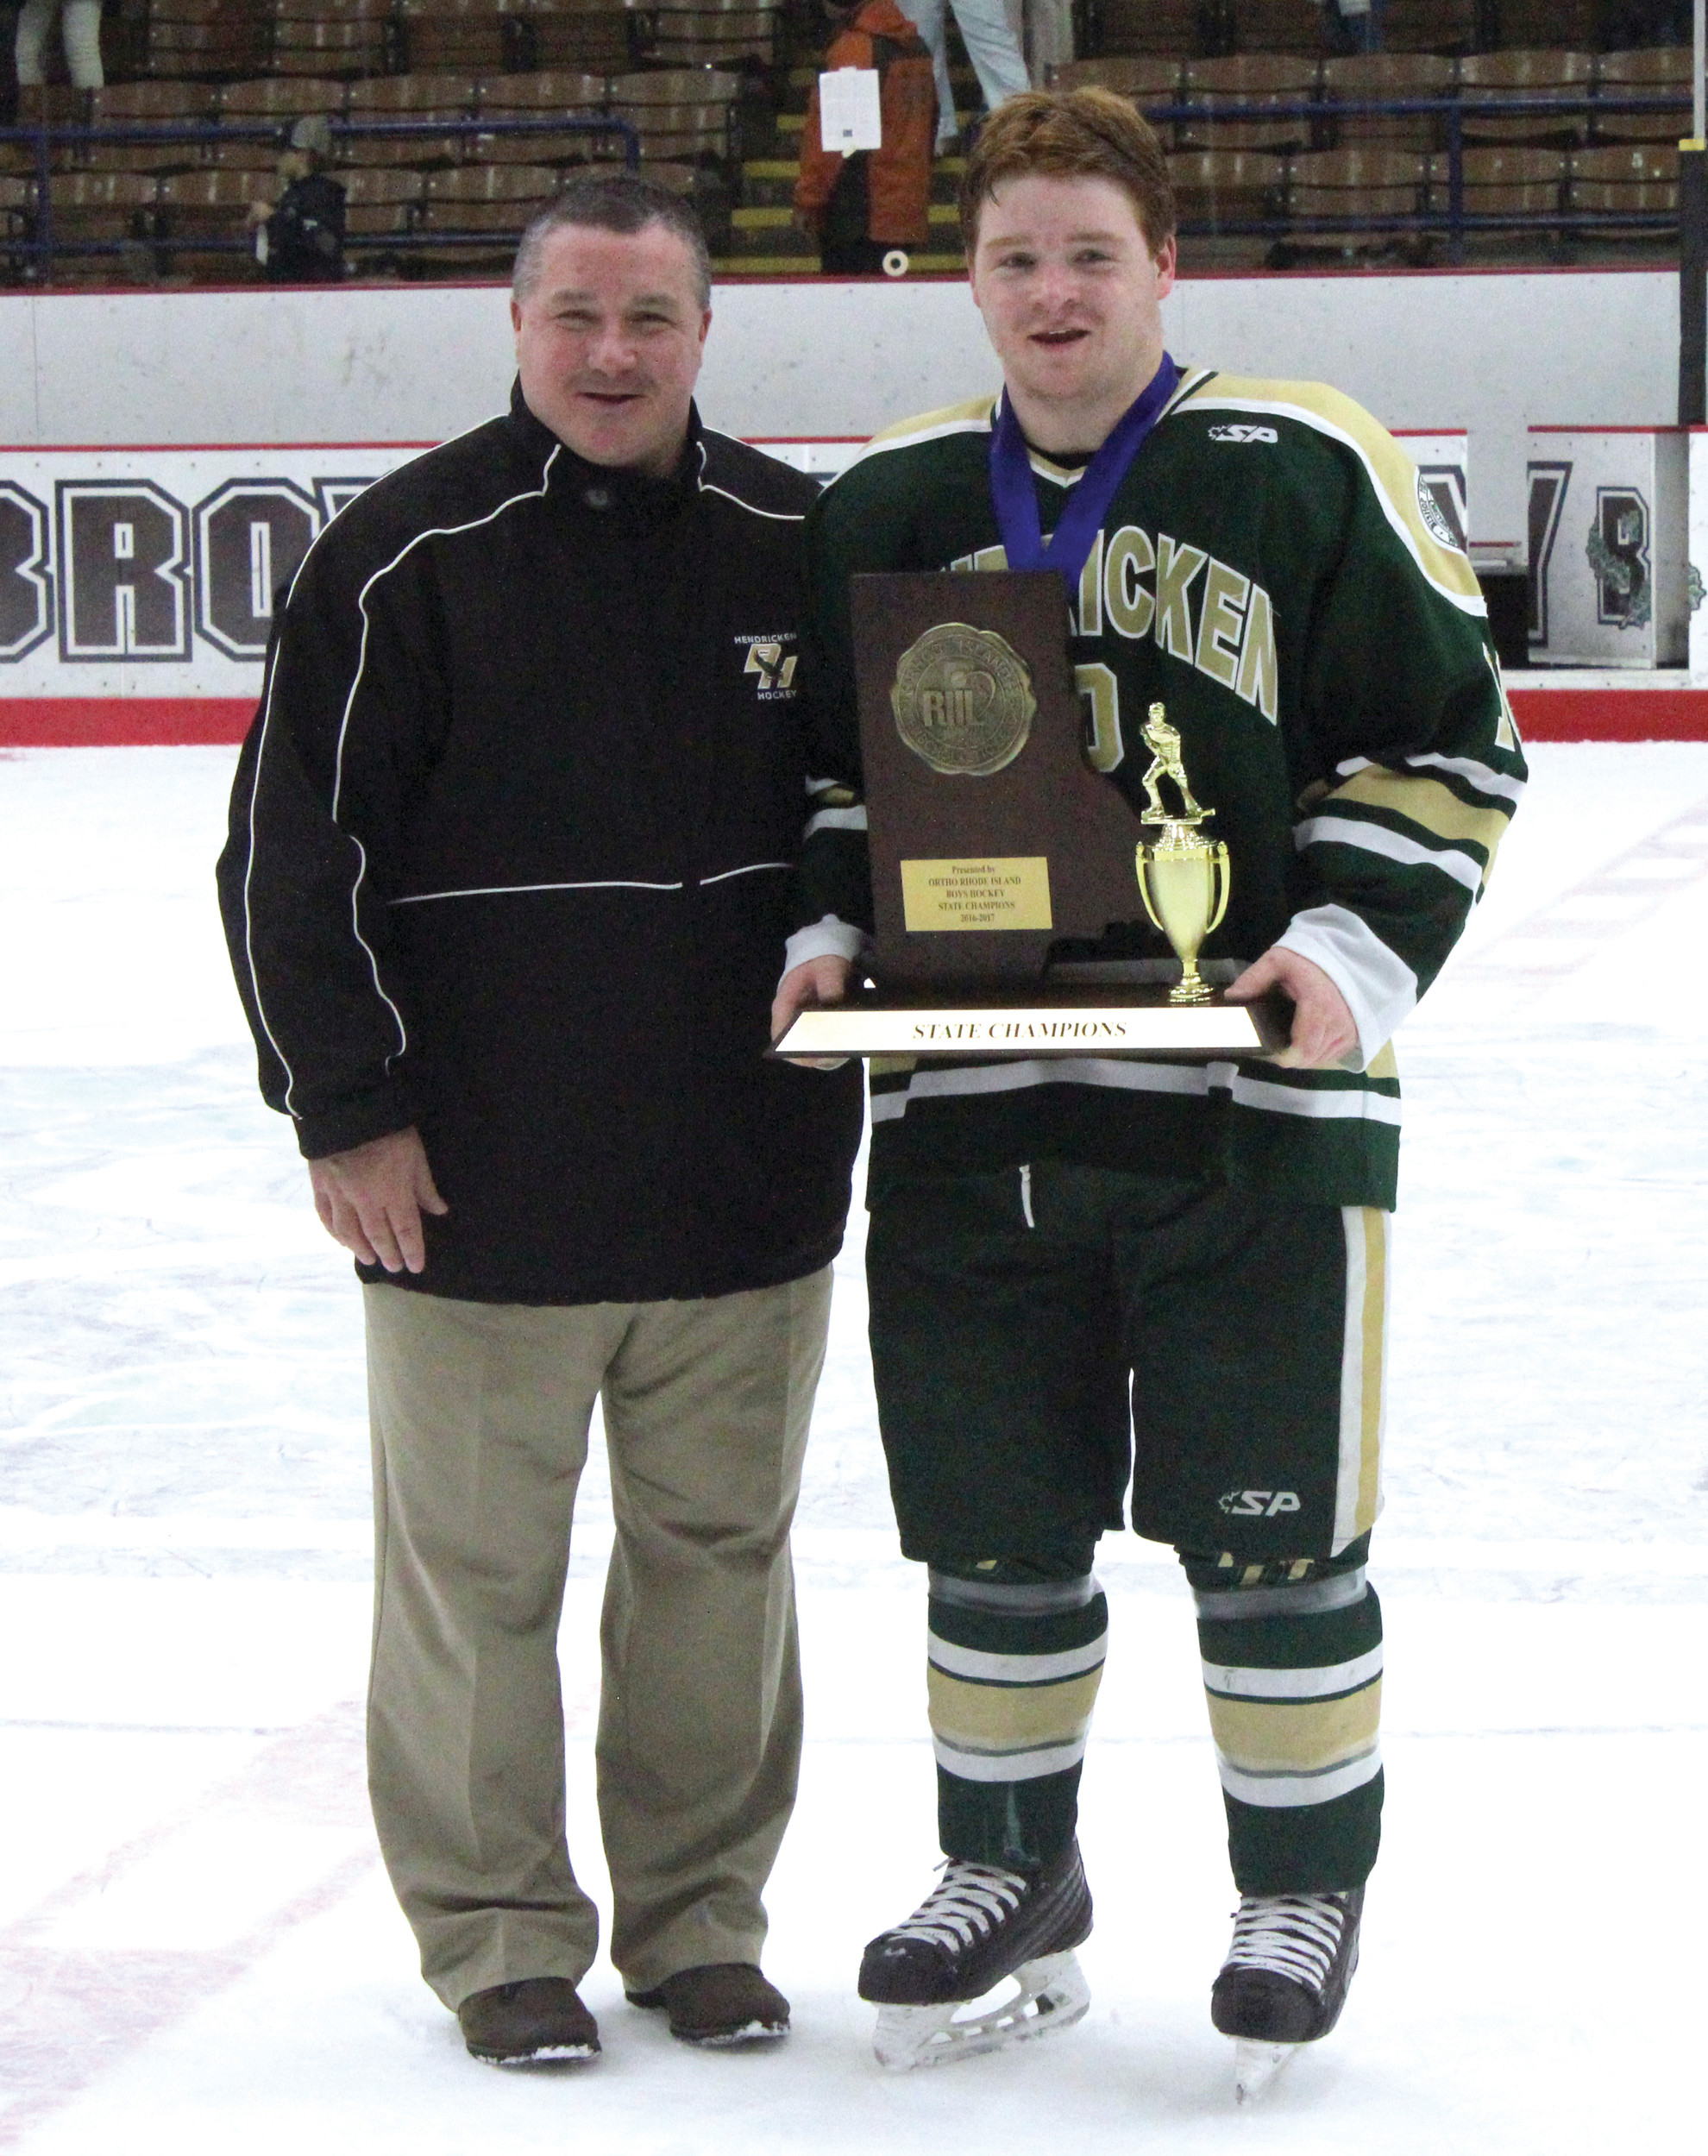 FAMILY EFFORT: Hendricken head coach Jim Creamer poses for a photo with his son Pat Creamer.